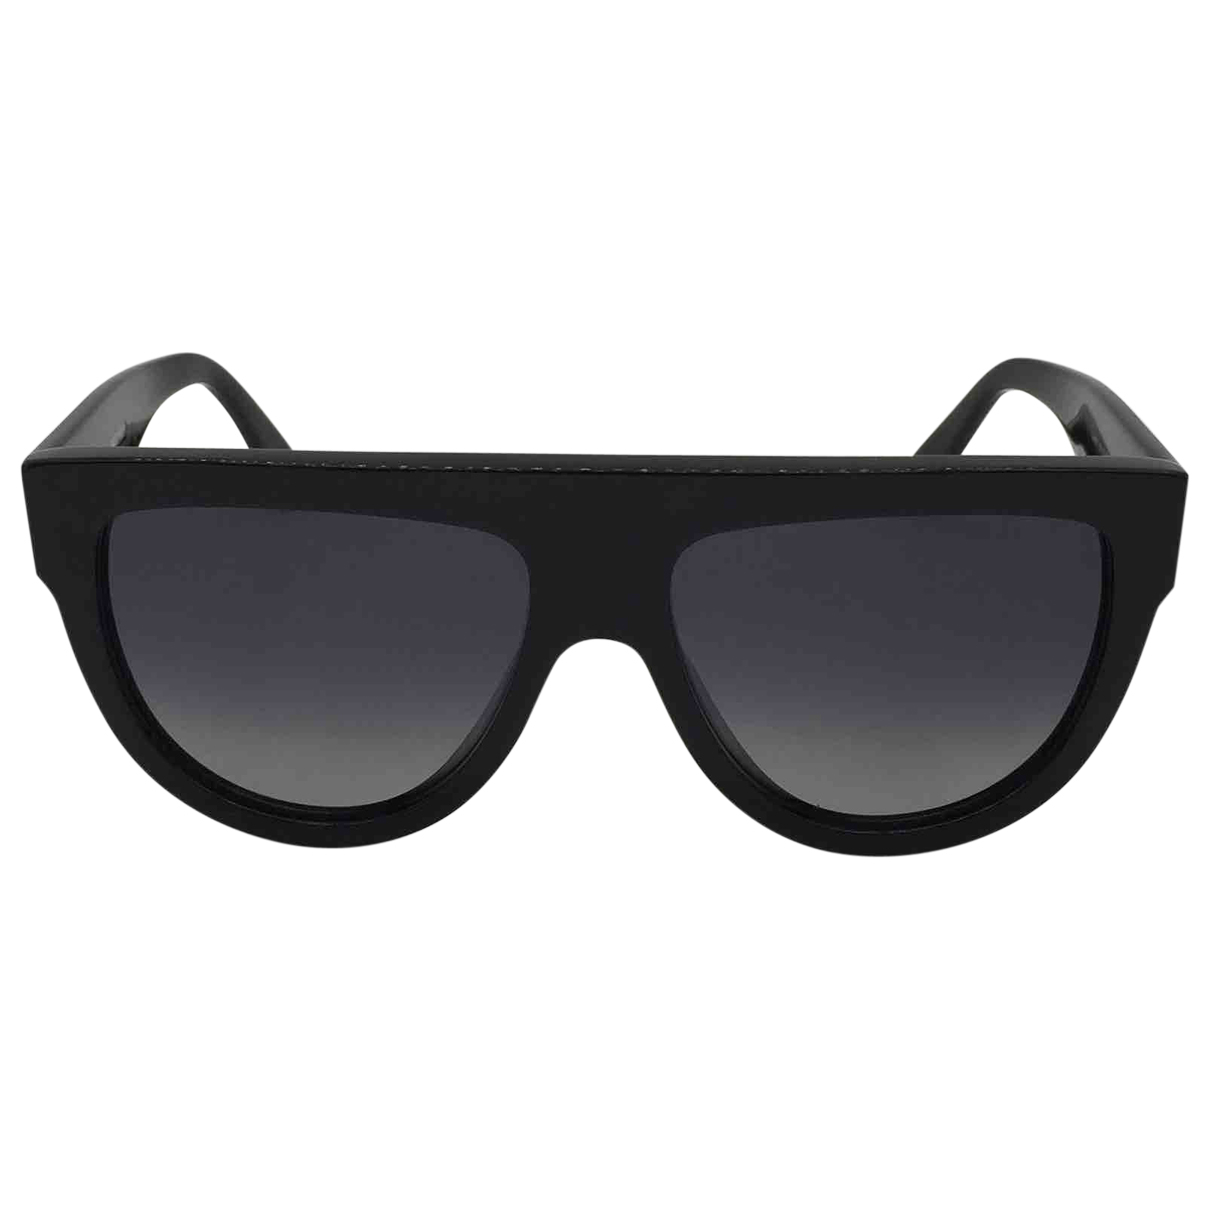 Celine N Black Sunglasses for Women N